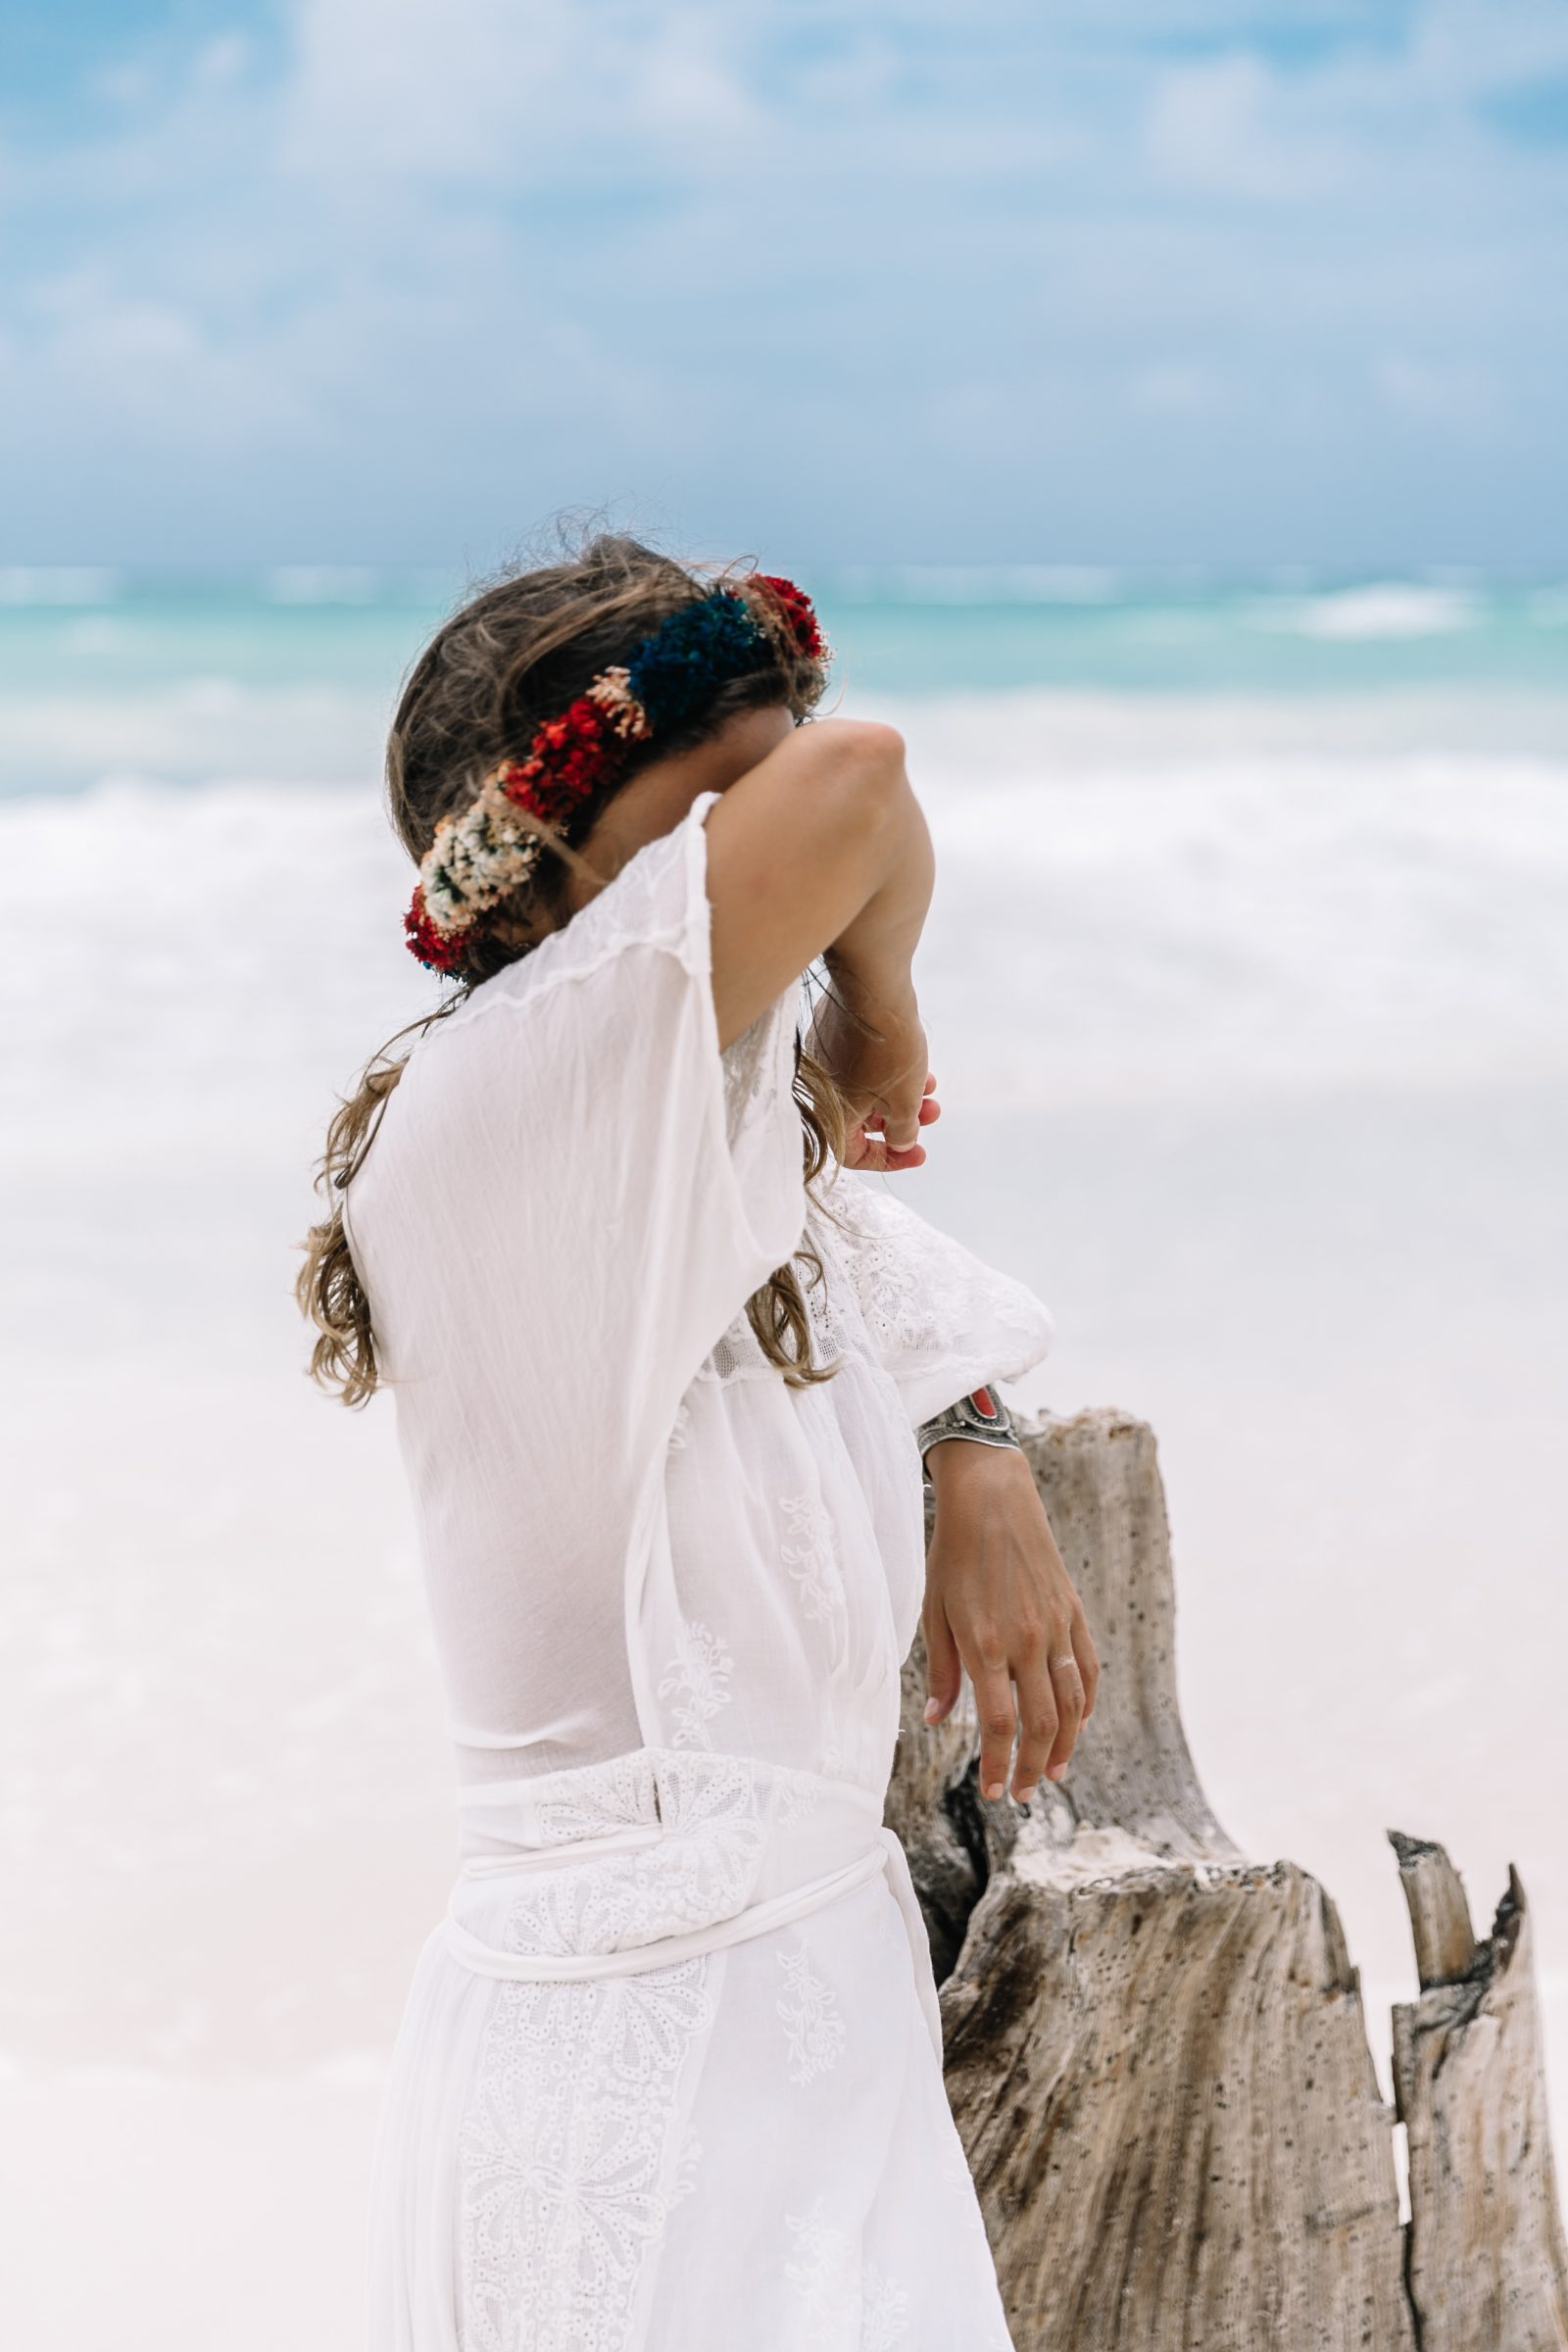 white_long_dress-boho_style-tulum_mexico-beach-floral_crown-outfit-collage_vintage-75